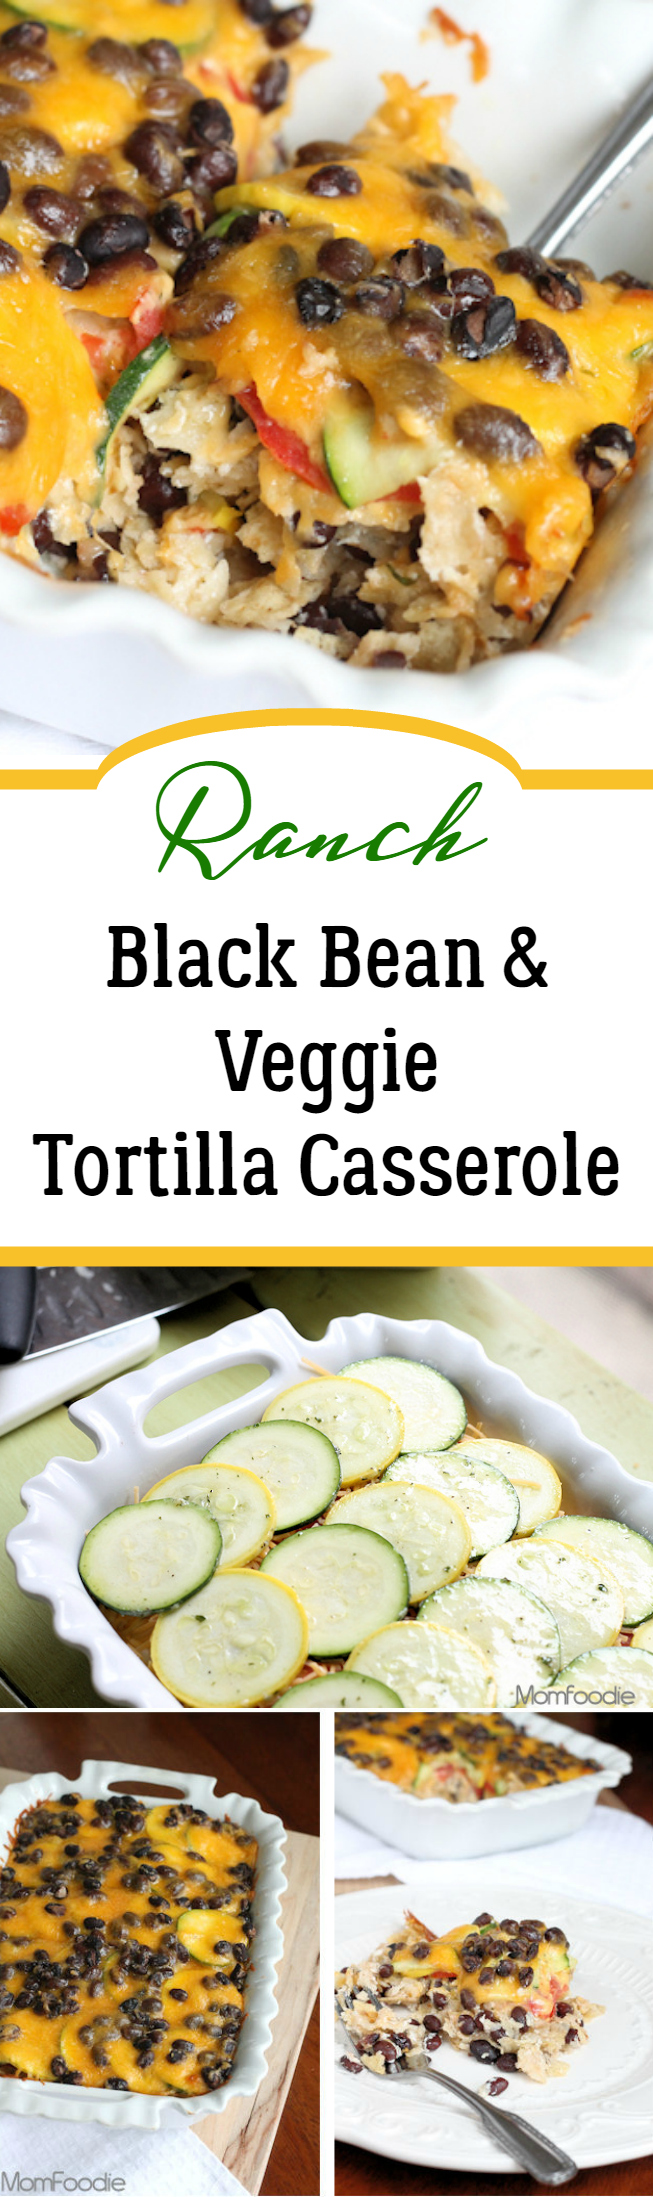 Ranch Black Bean and Veggie Tortilla Casserole